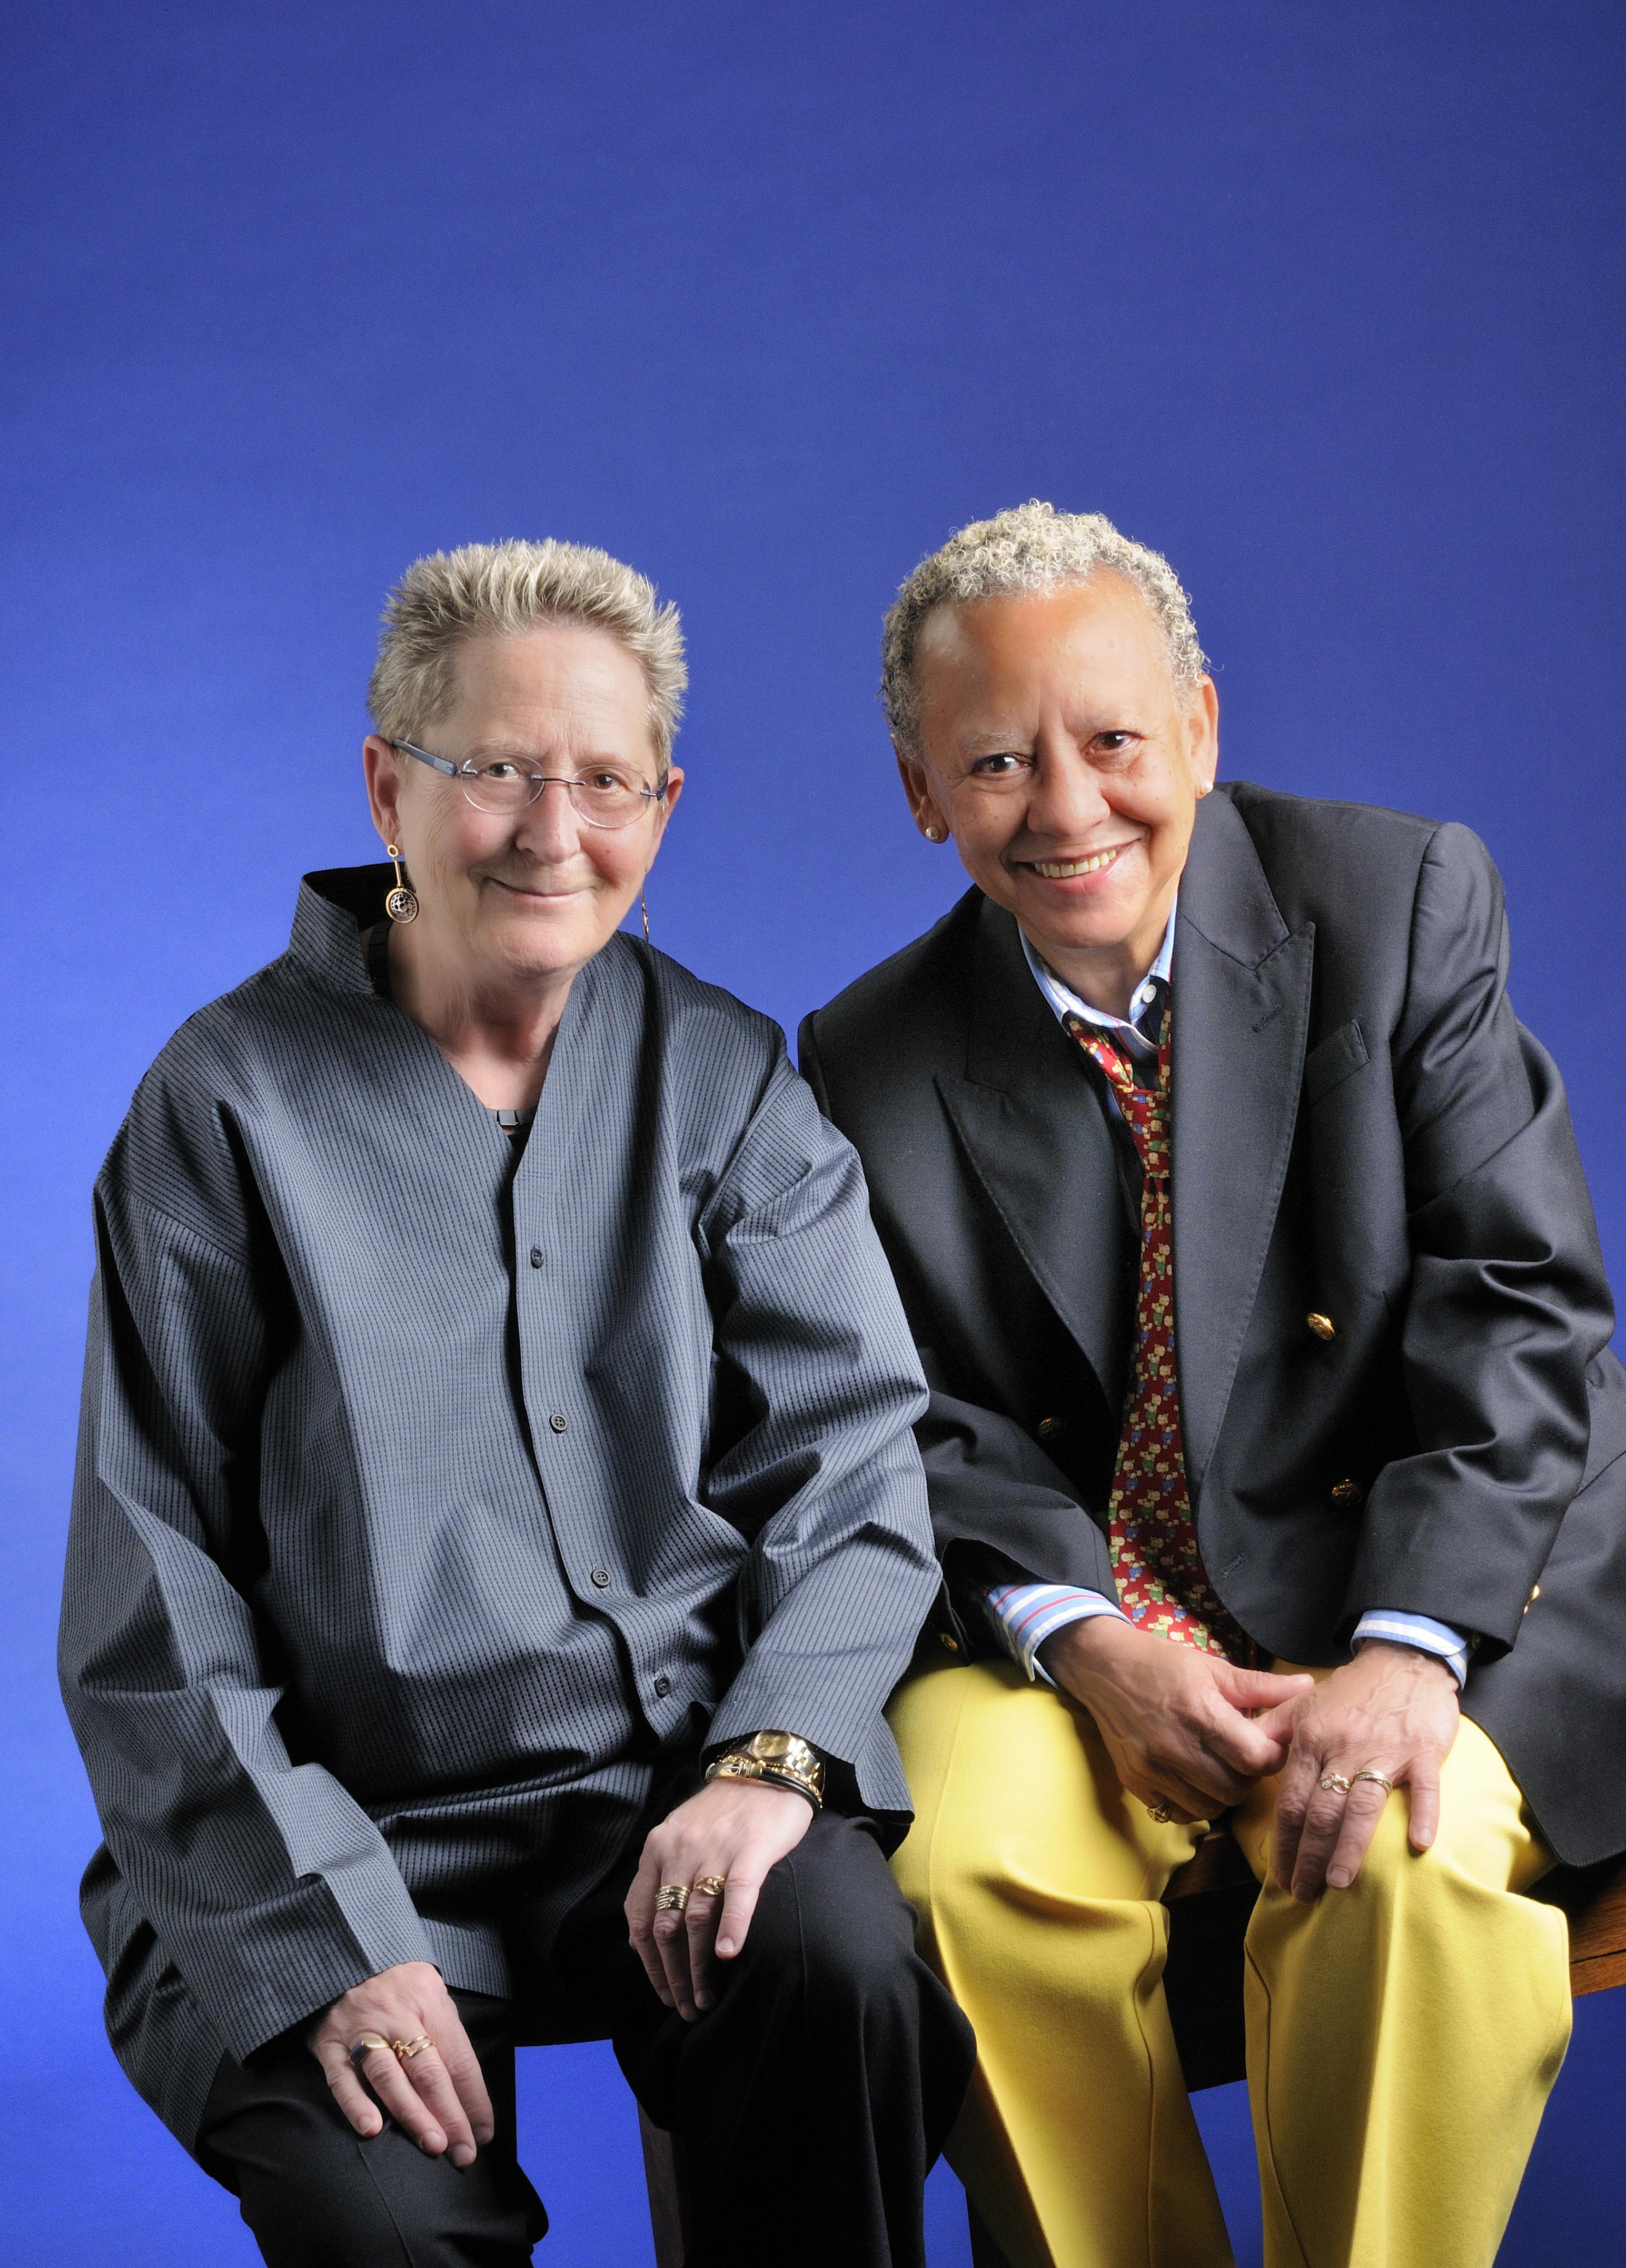 Virginia Fowler (left) and Nikki Giovanni